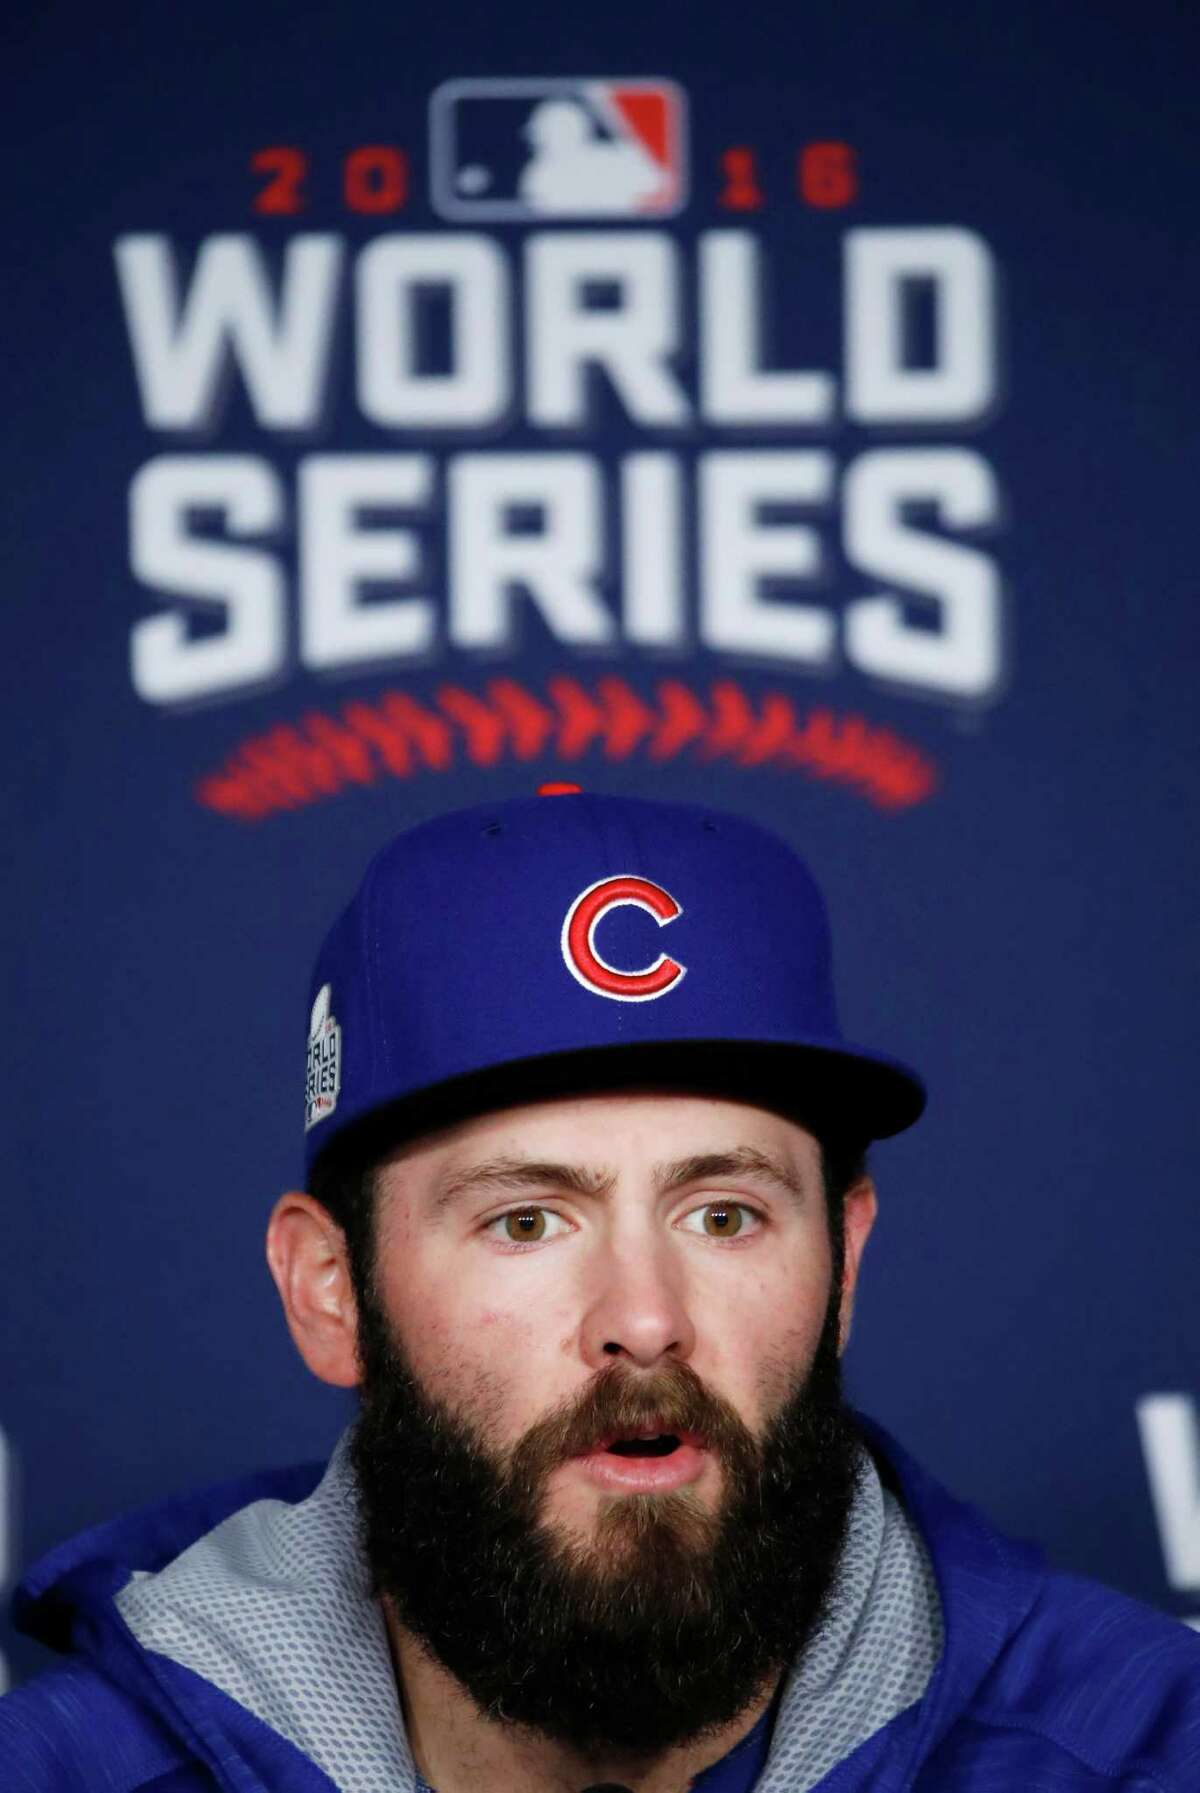 Cubs pitching star Jake Arrieta revealed his pleasure with the outcome of Tuesday's election.